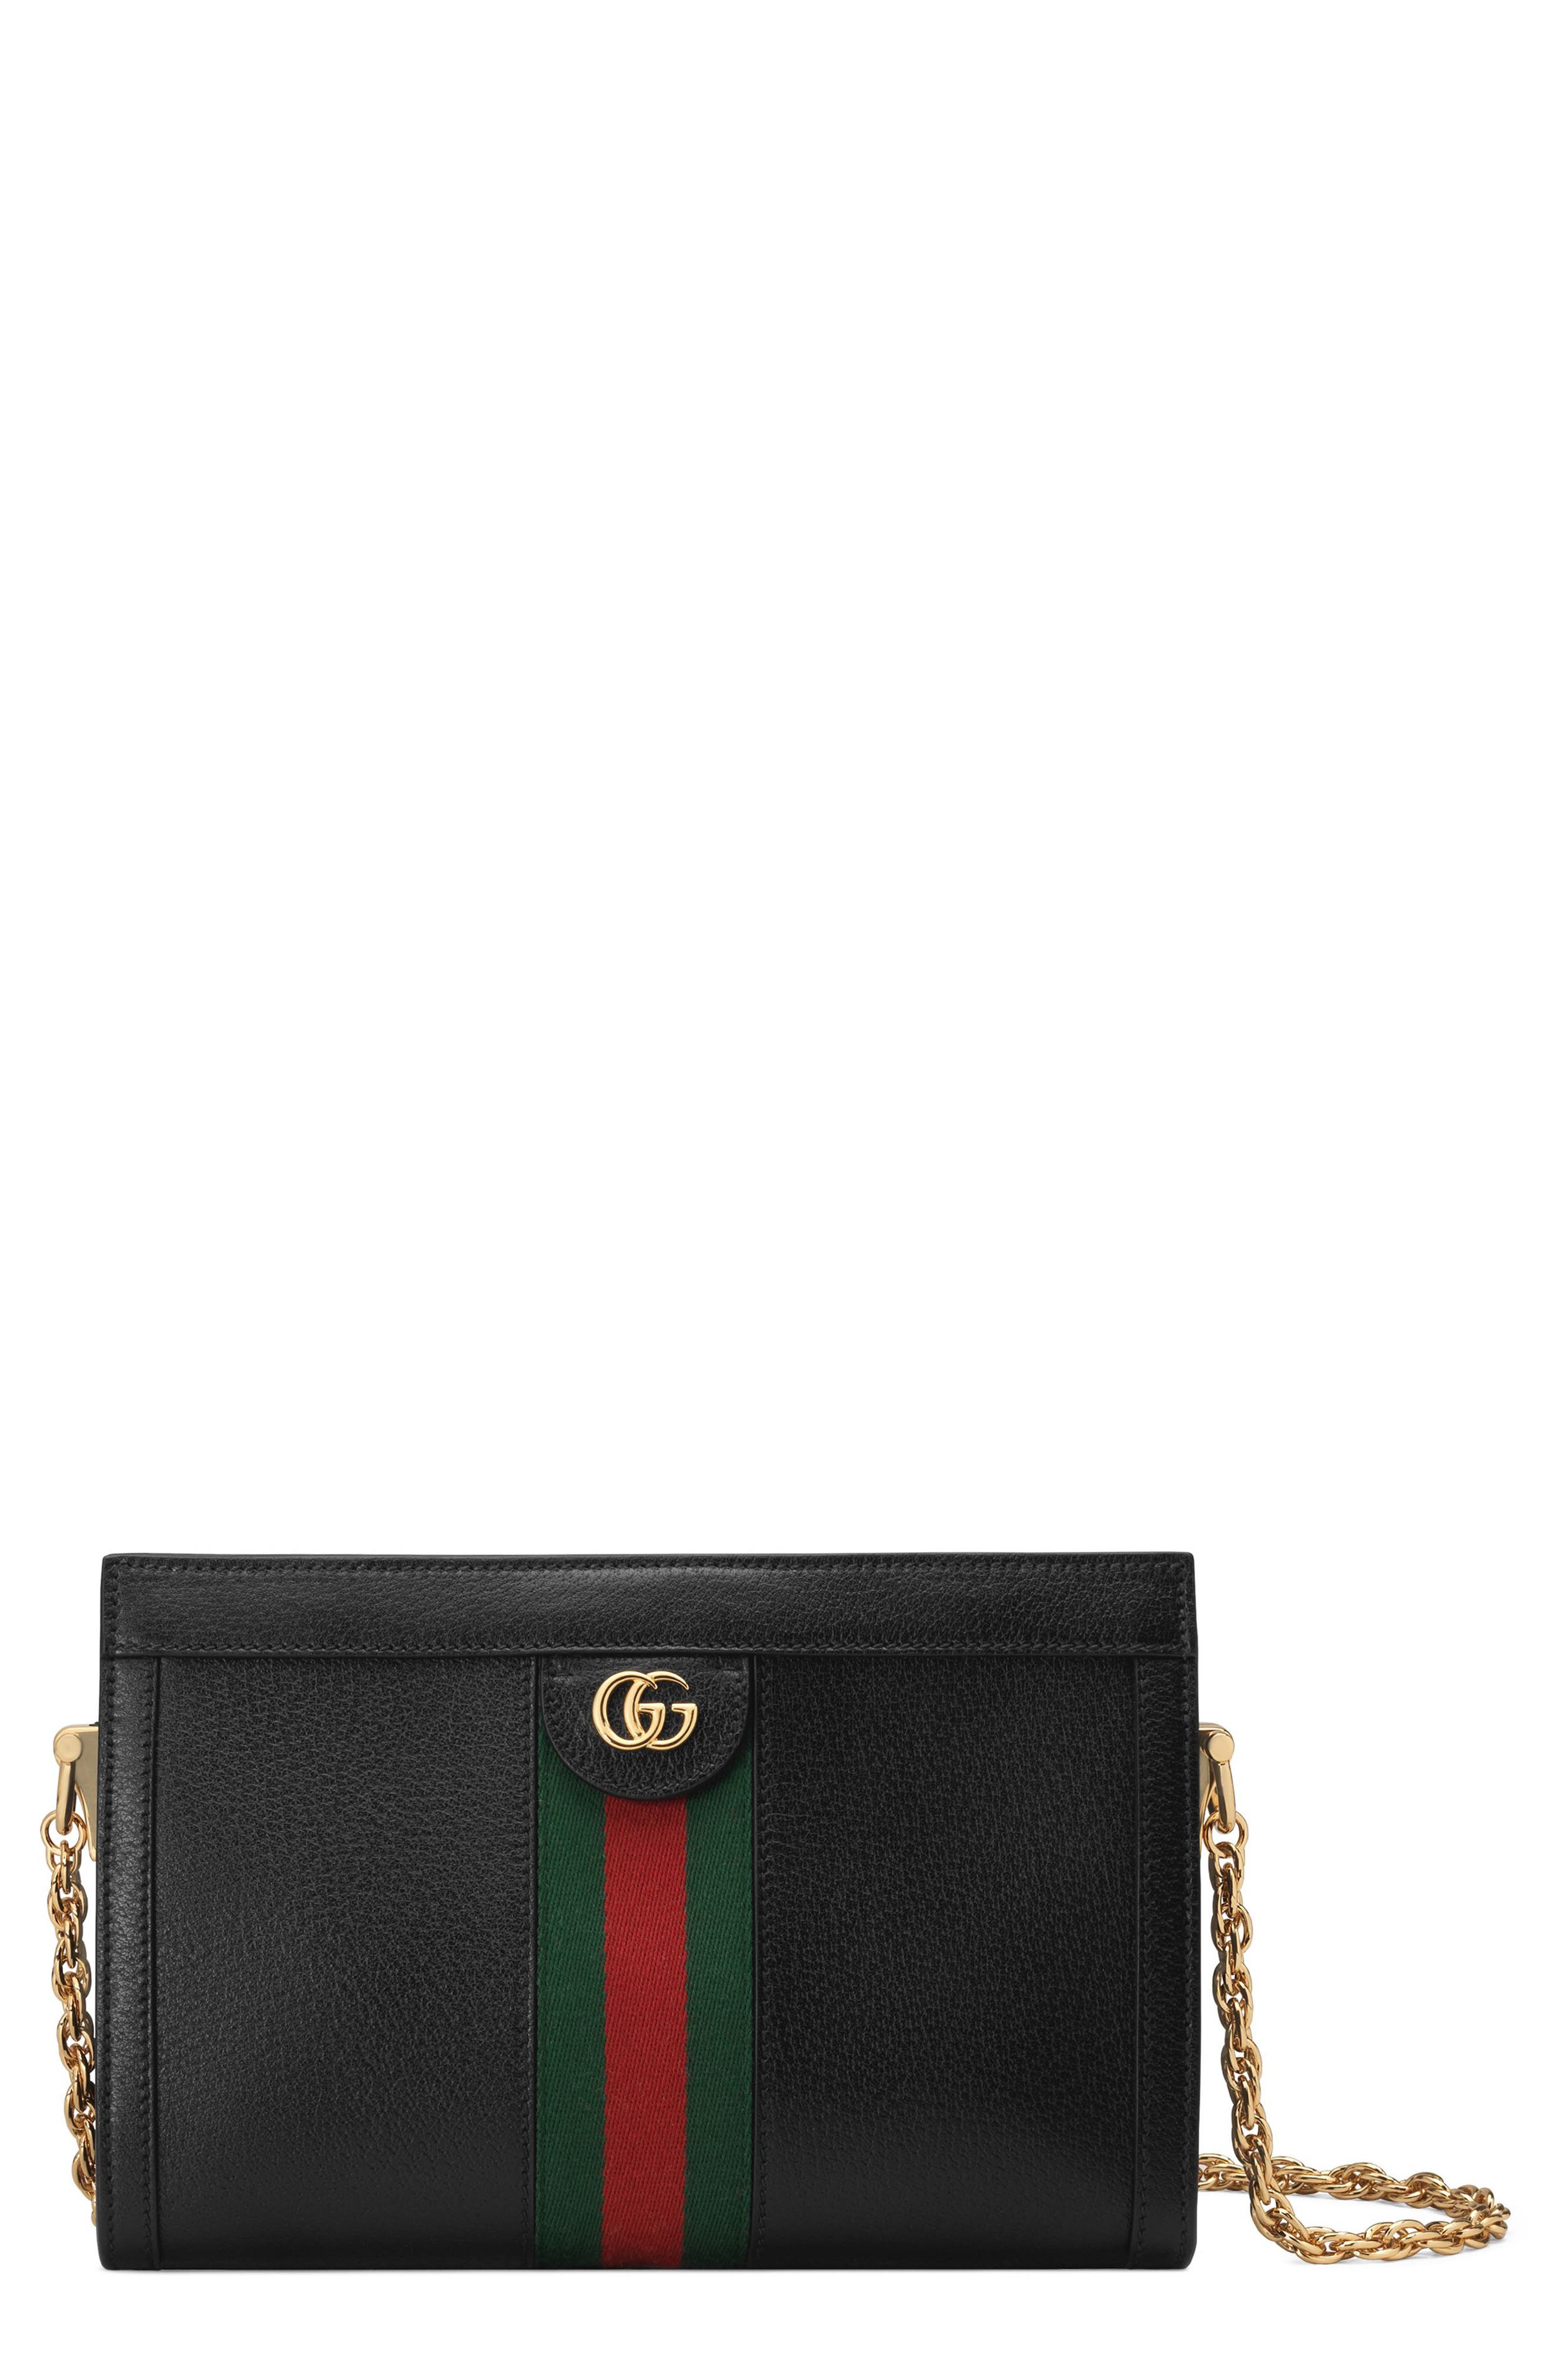 Small Ophidia Leather Shoulder Bag, Main, color, NERO/ VERT RED VERT